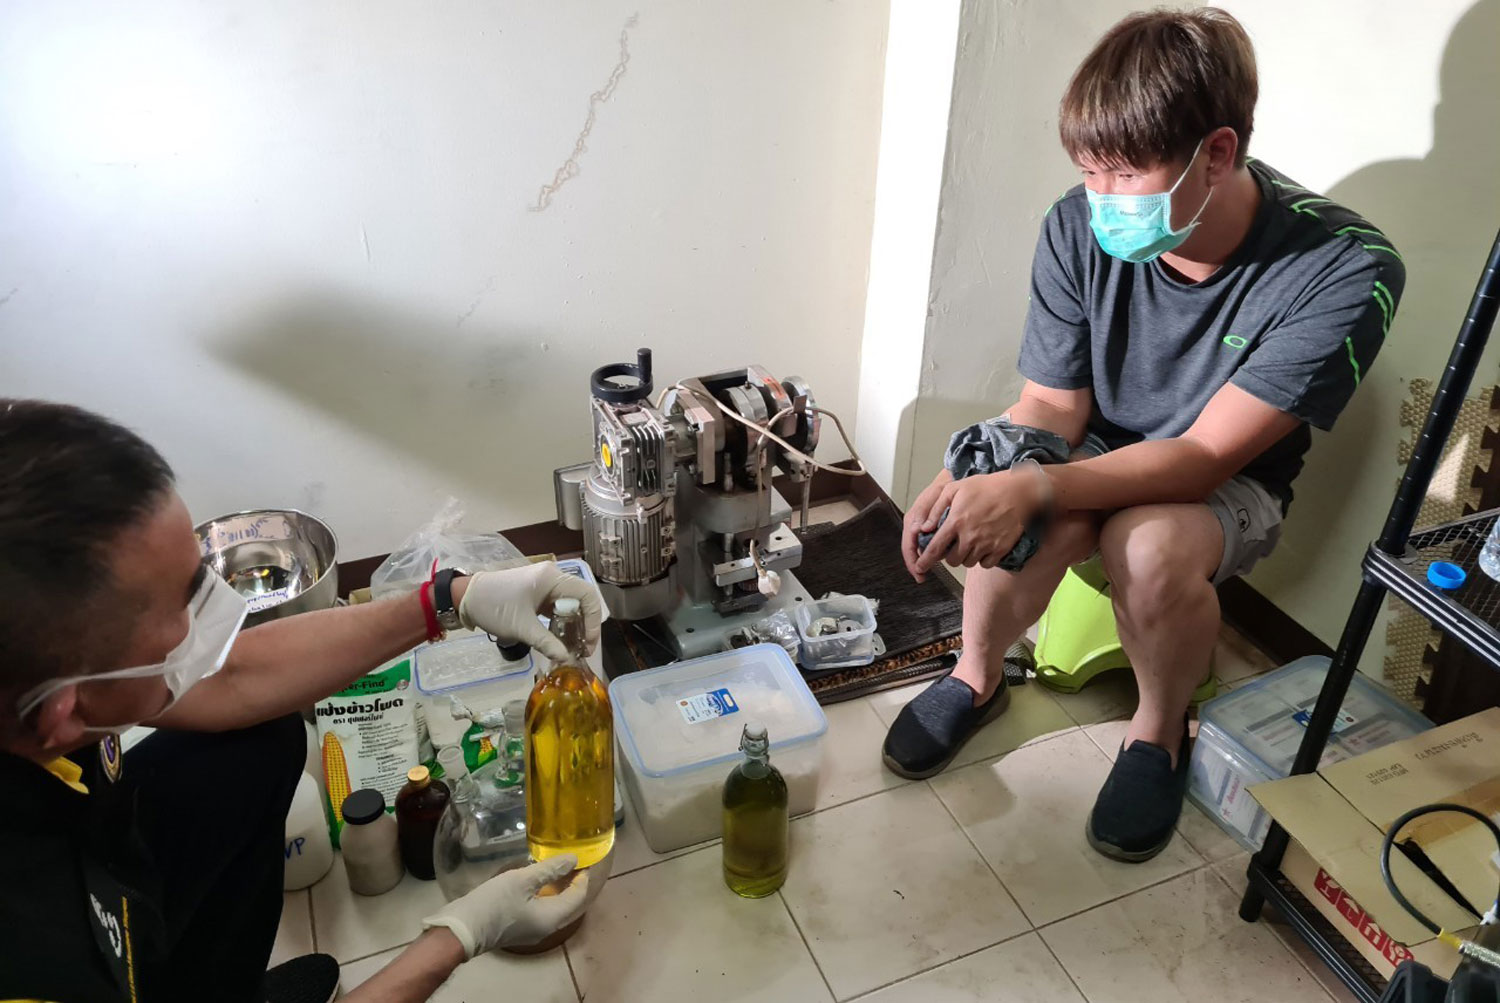 Chemical engineer Pathiwet Suwankhiri (right) is caught during a police raid that netted 20,000 ecstasy pills in Nonthaburi on Saturday. (Police photo)